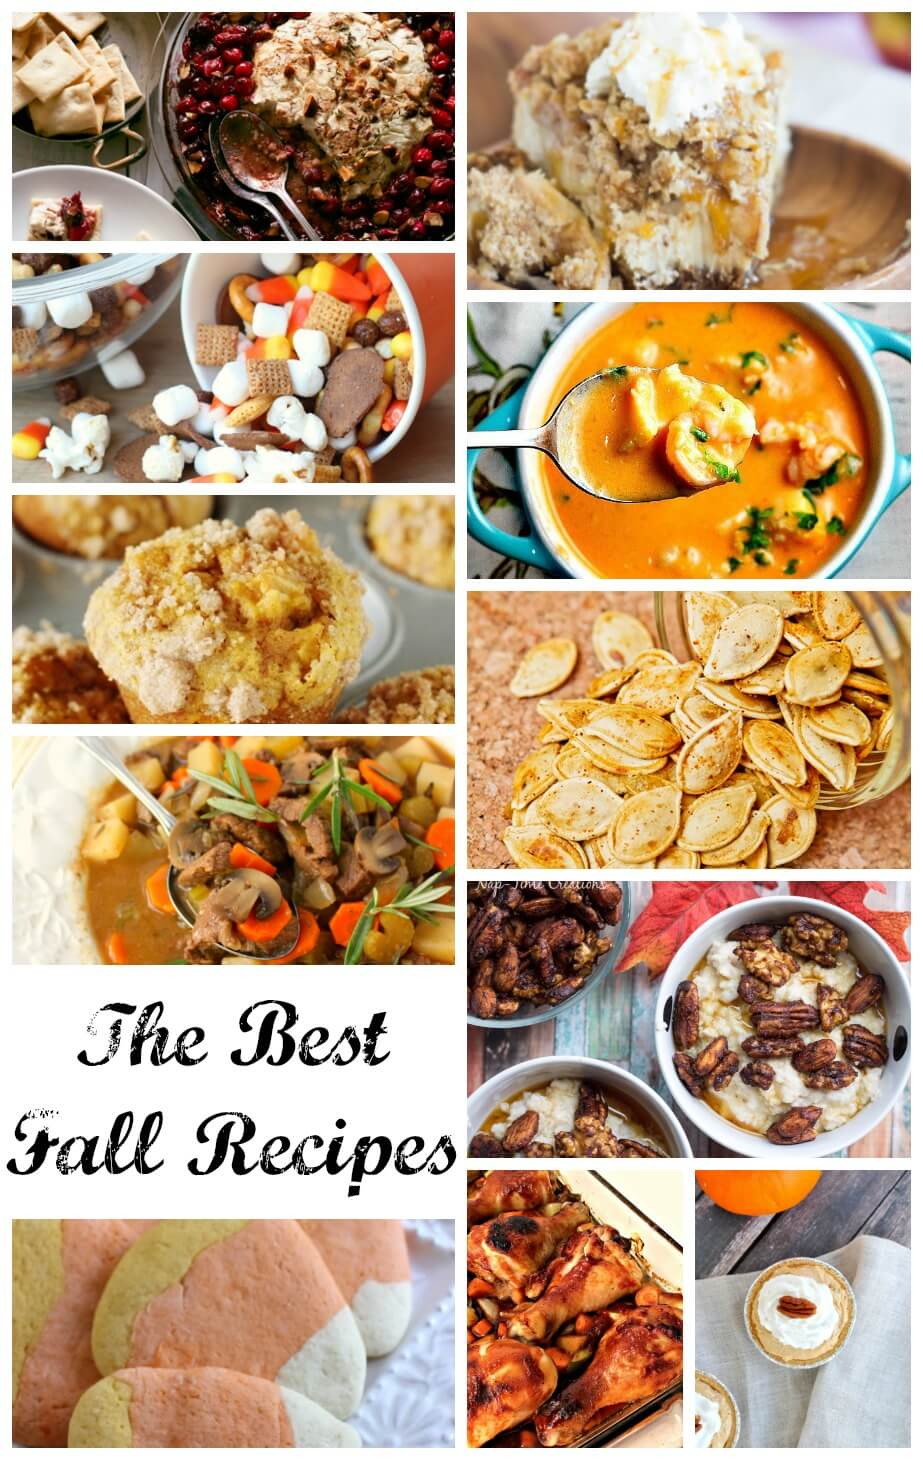 the-best-fall-recipes-a-round-up-from-nap-time-creations